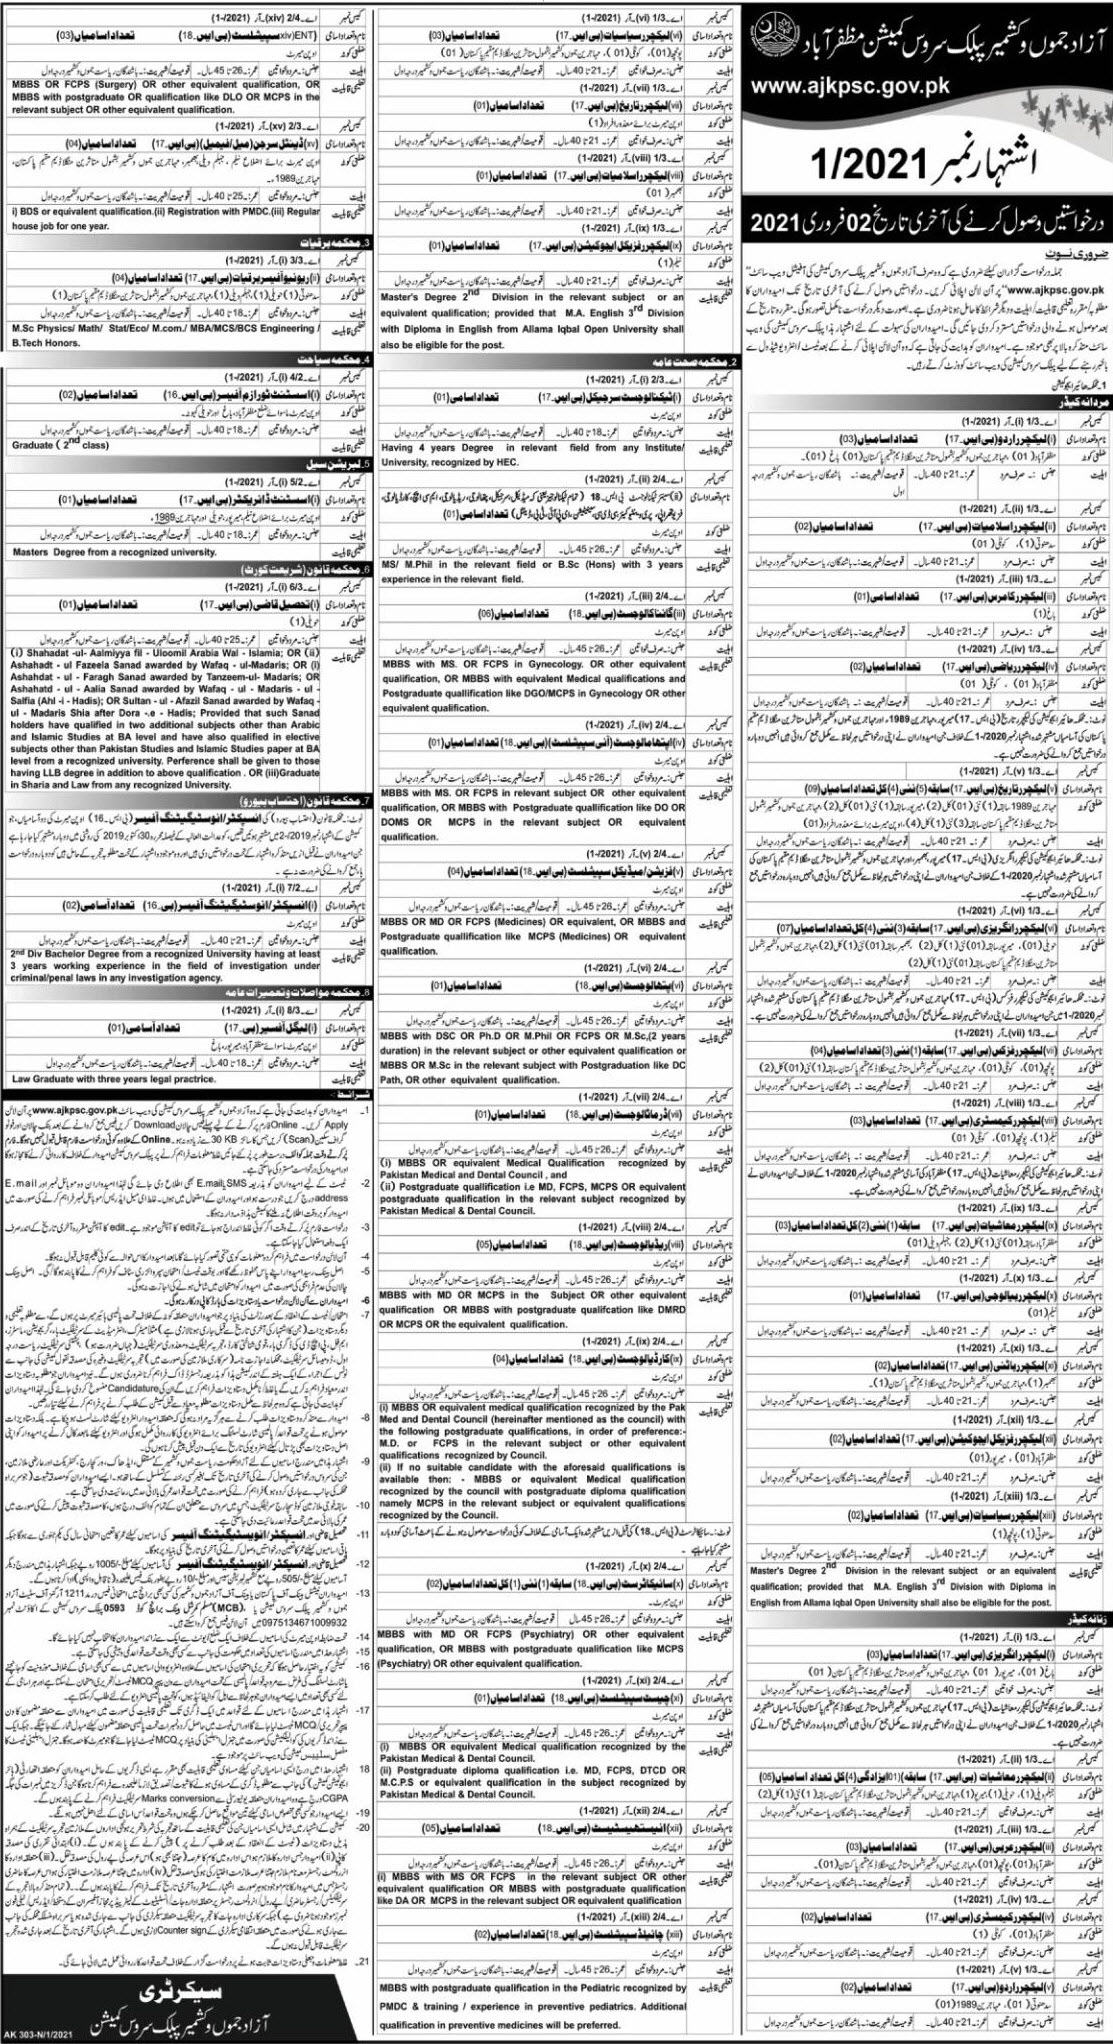 Higher Education Department jobs newspaper ad for Lecturer in Muzaffarabad on 2021-01-12